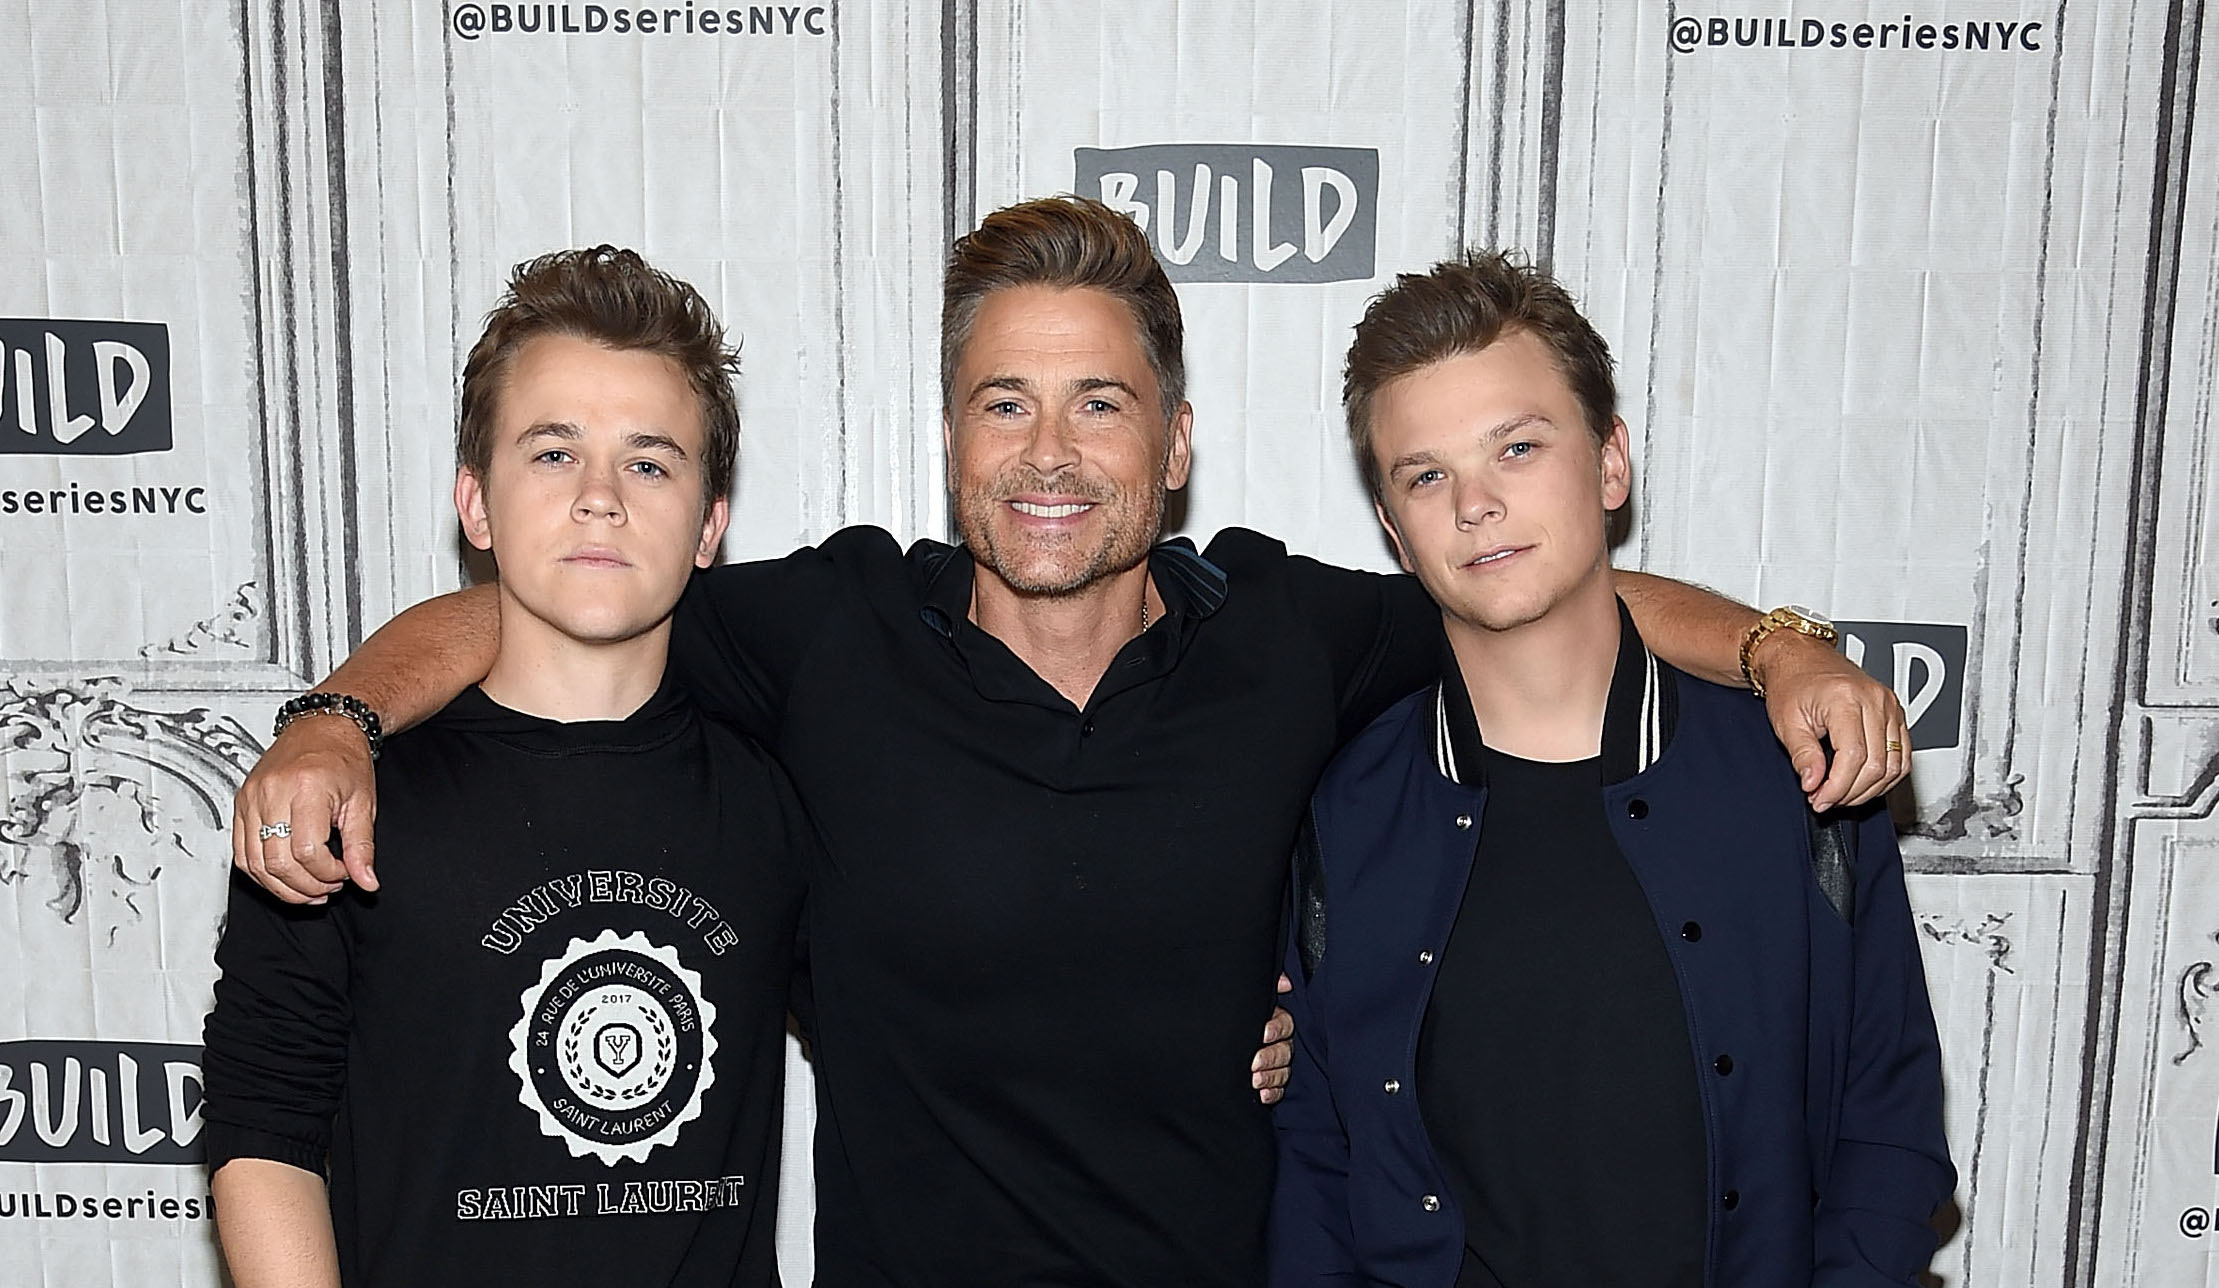 rob-lowe-matthew-john-owen-copy